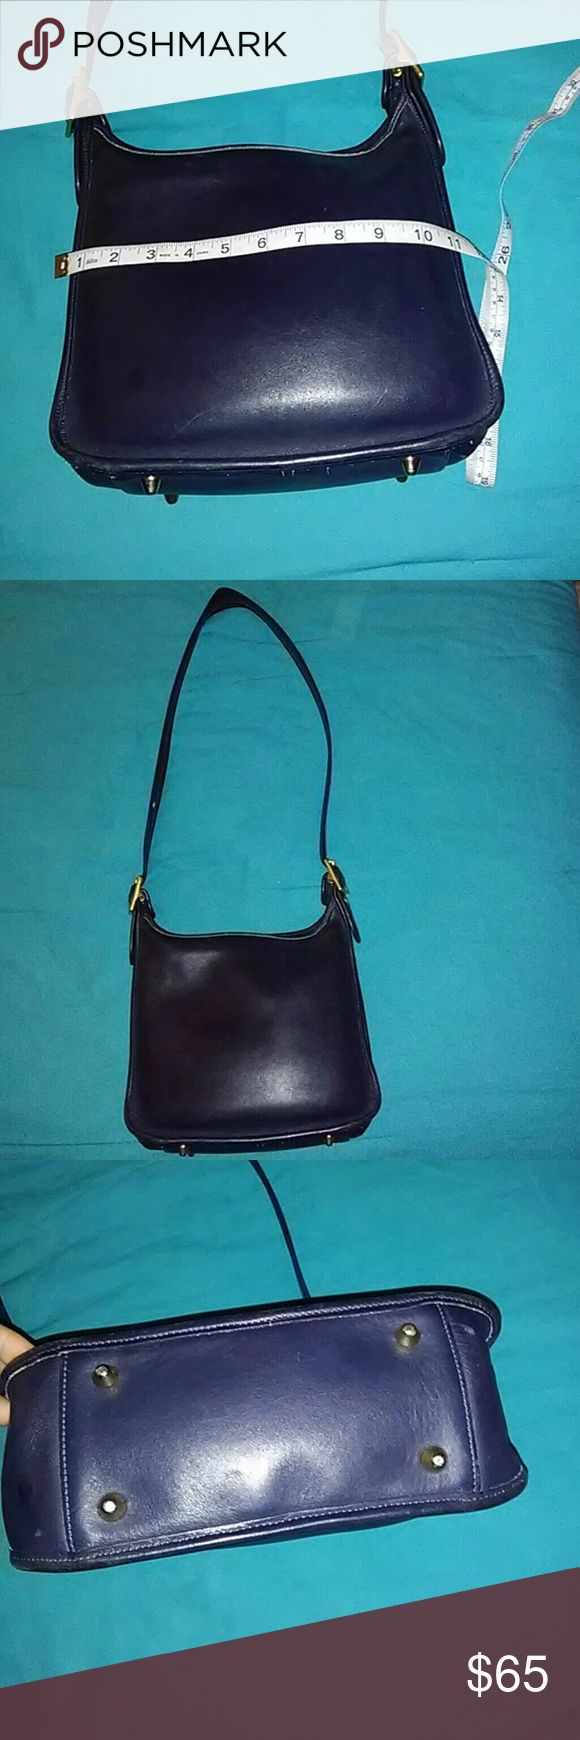 """Authentic Genuine Leather, Apprx 9""""x 10""""x 5"""" Vintage Coach Hobo/Shoulder Bag No H8P-9966. Navy blue in color with gold tone hardware. 9 out of 10 to be a perfect bag. Missing hang tag though. Zip closure. All around very very good bag👍👍 Coach Bags Shoulder Bags"""